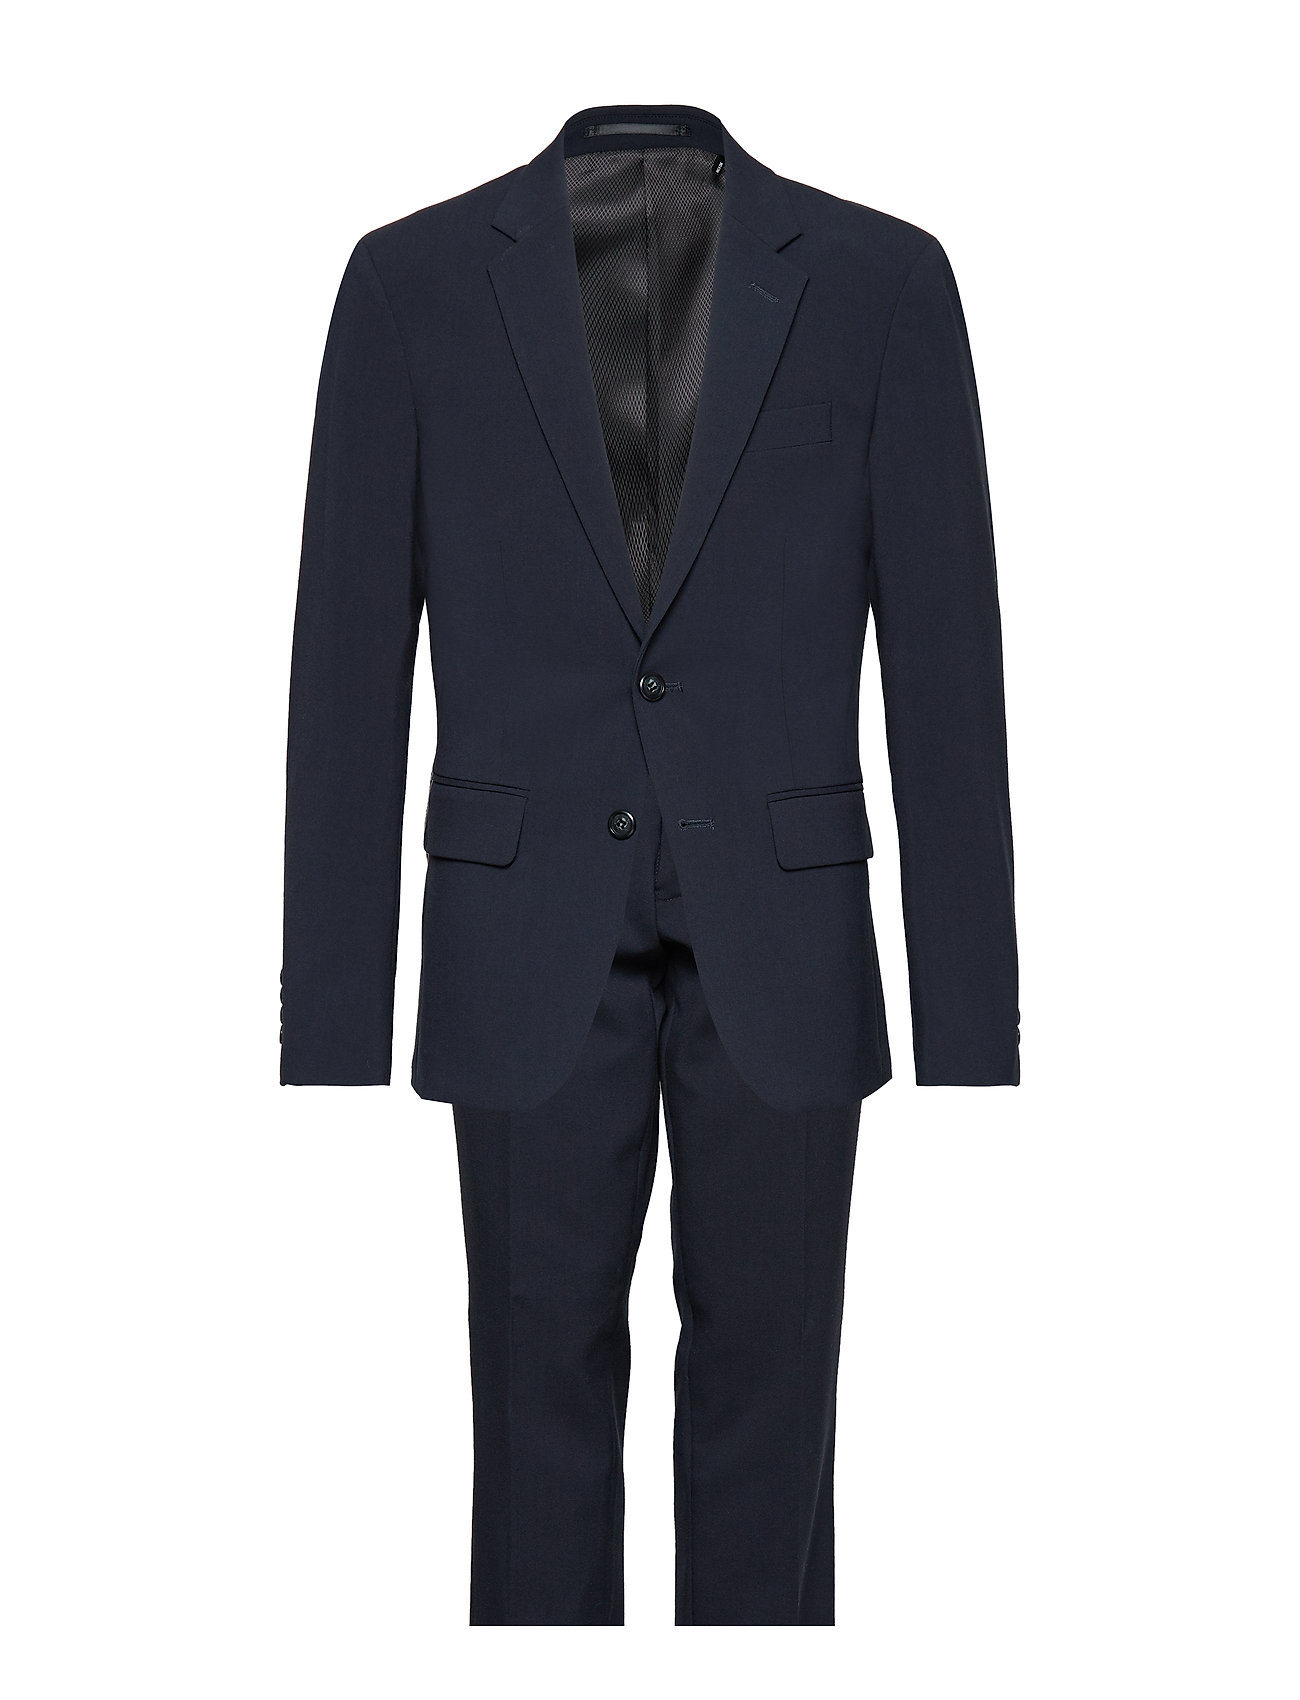 Lindbergh Mens suit - NAVY